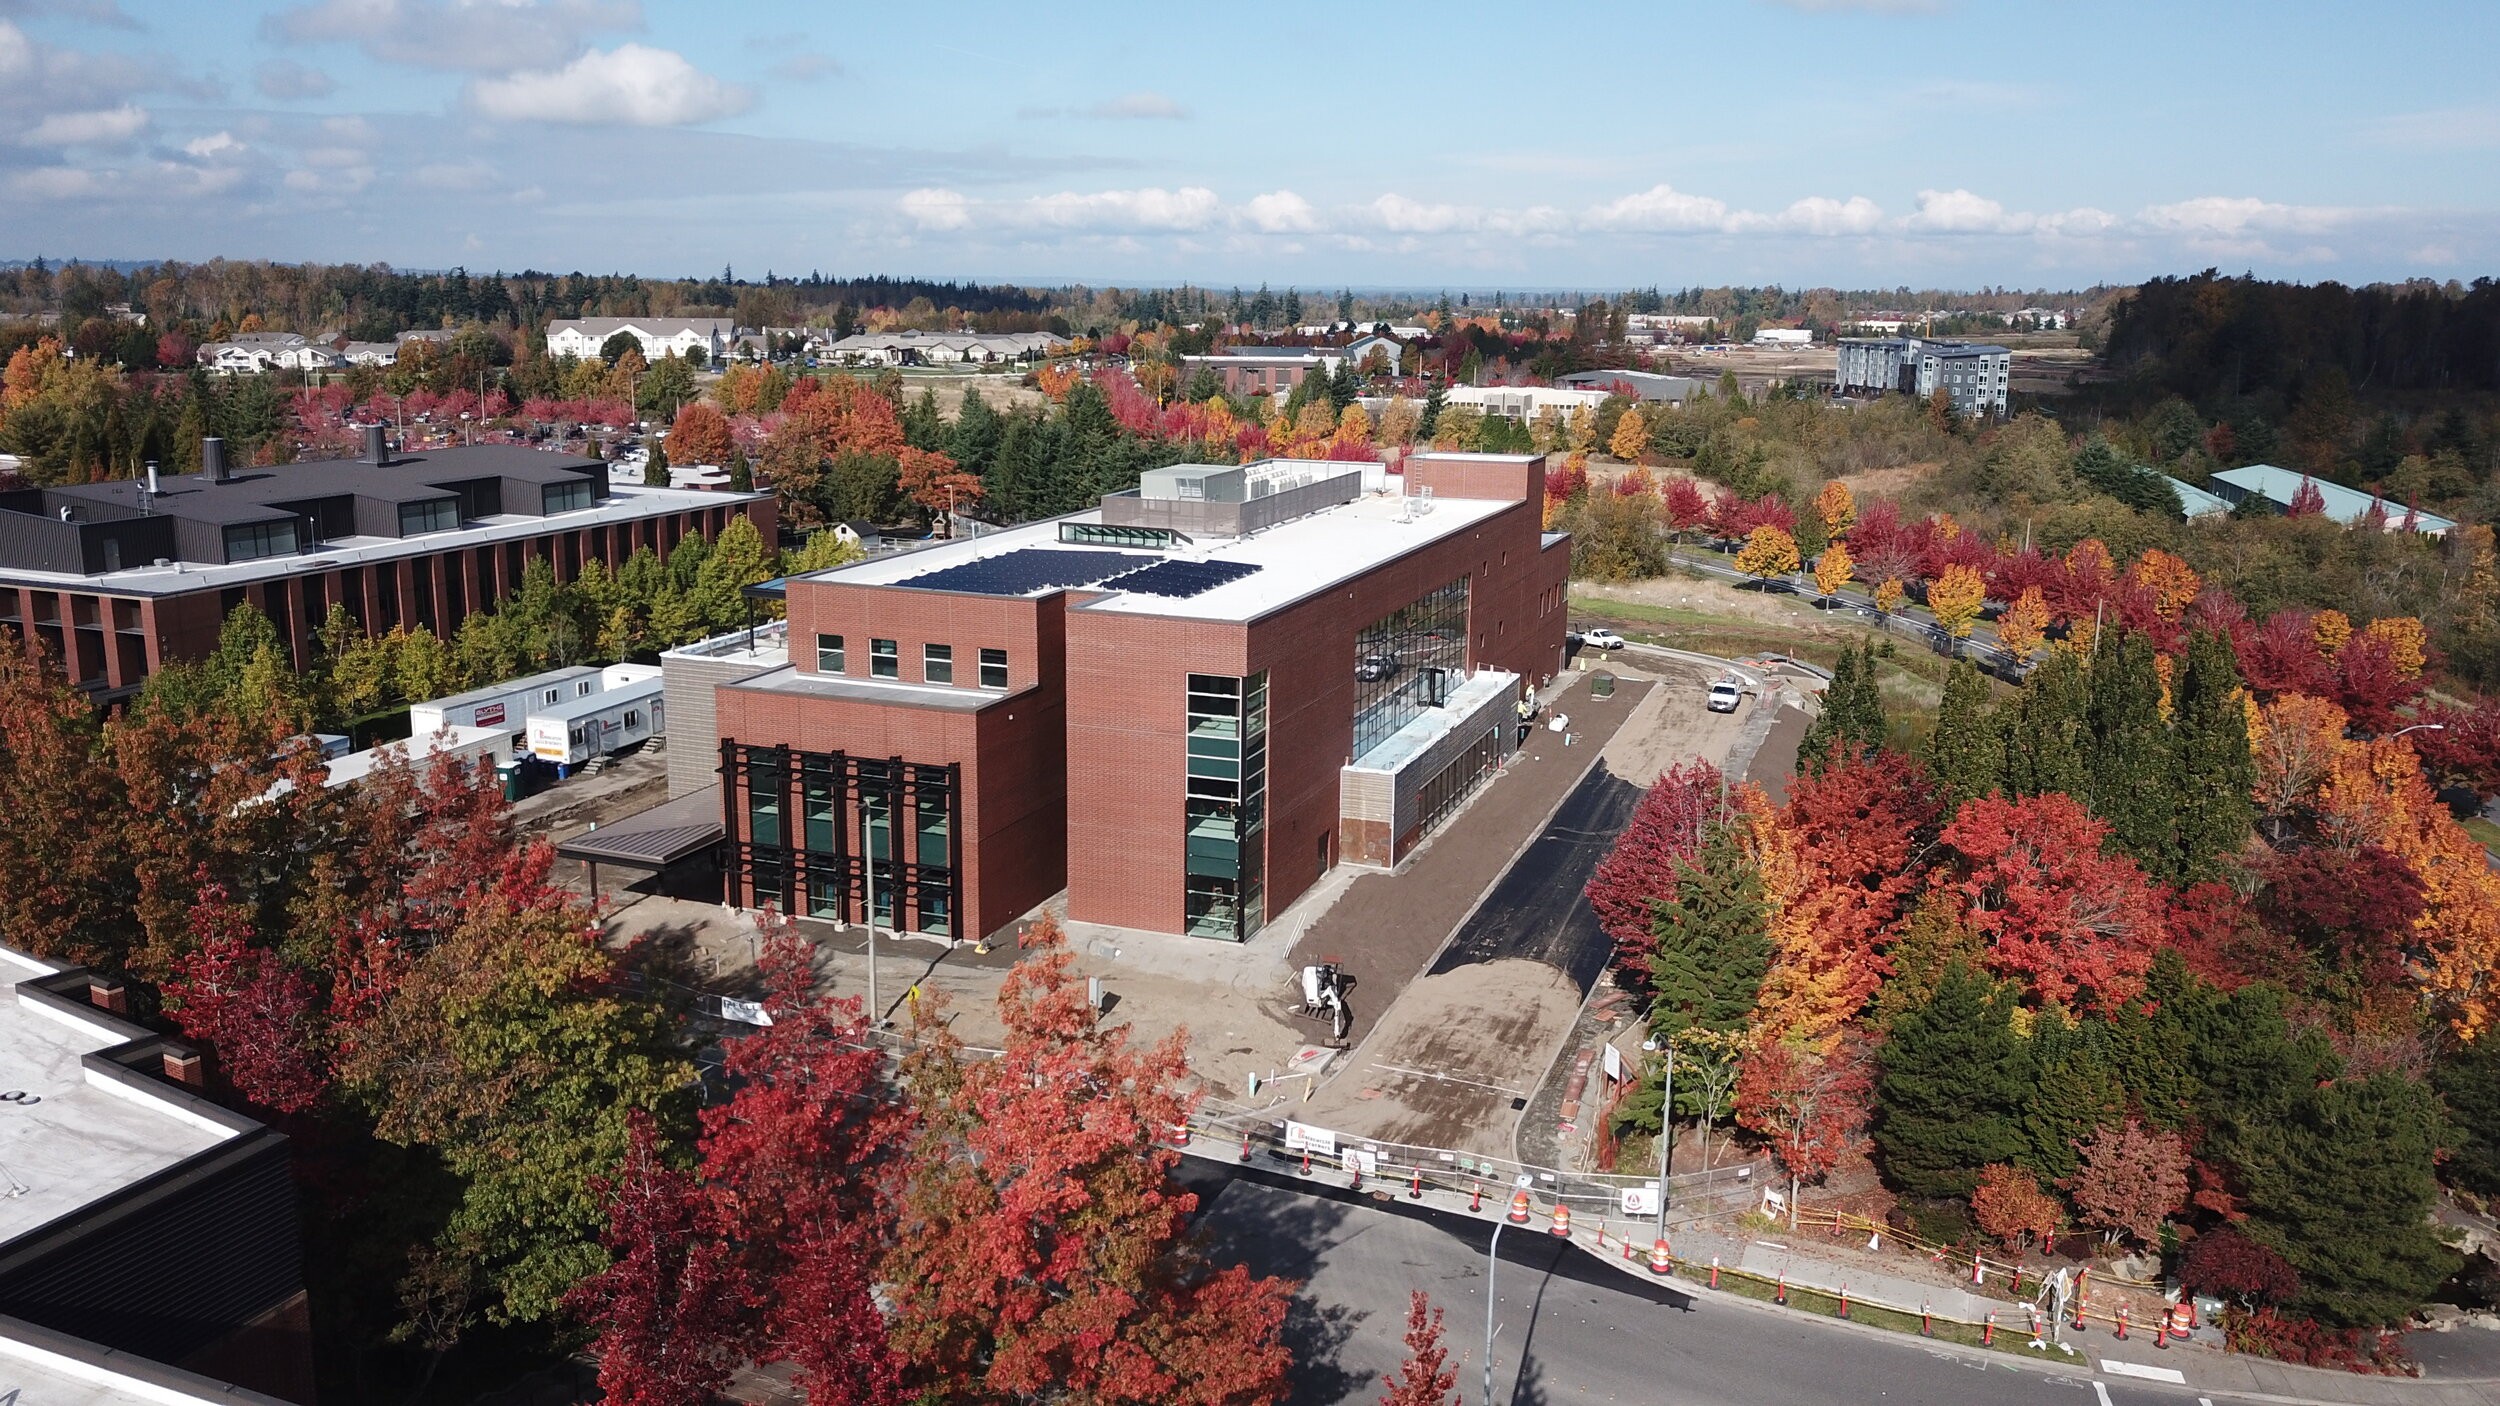 2019-10-14 WCC Learning Commons Aerial.JPG